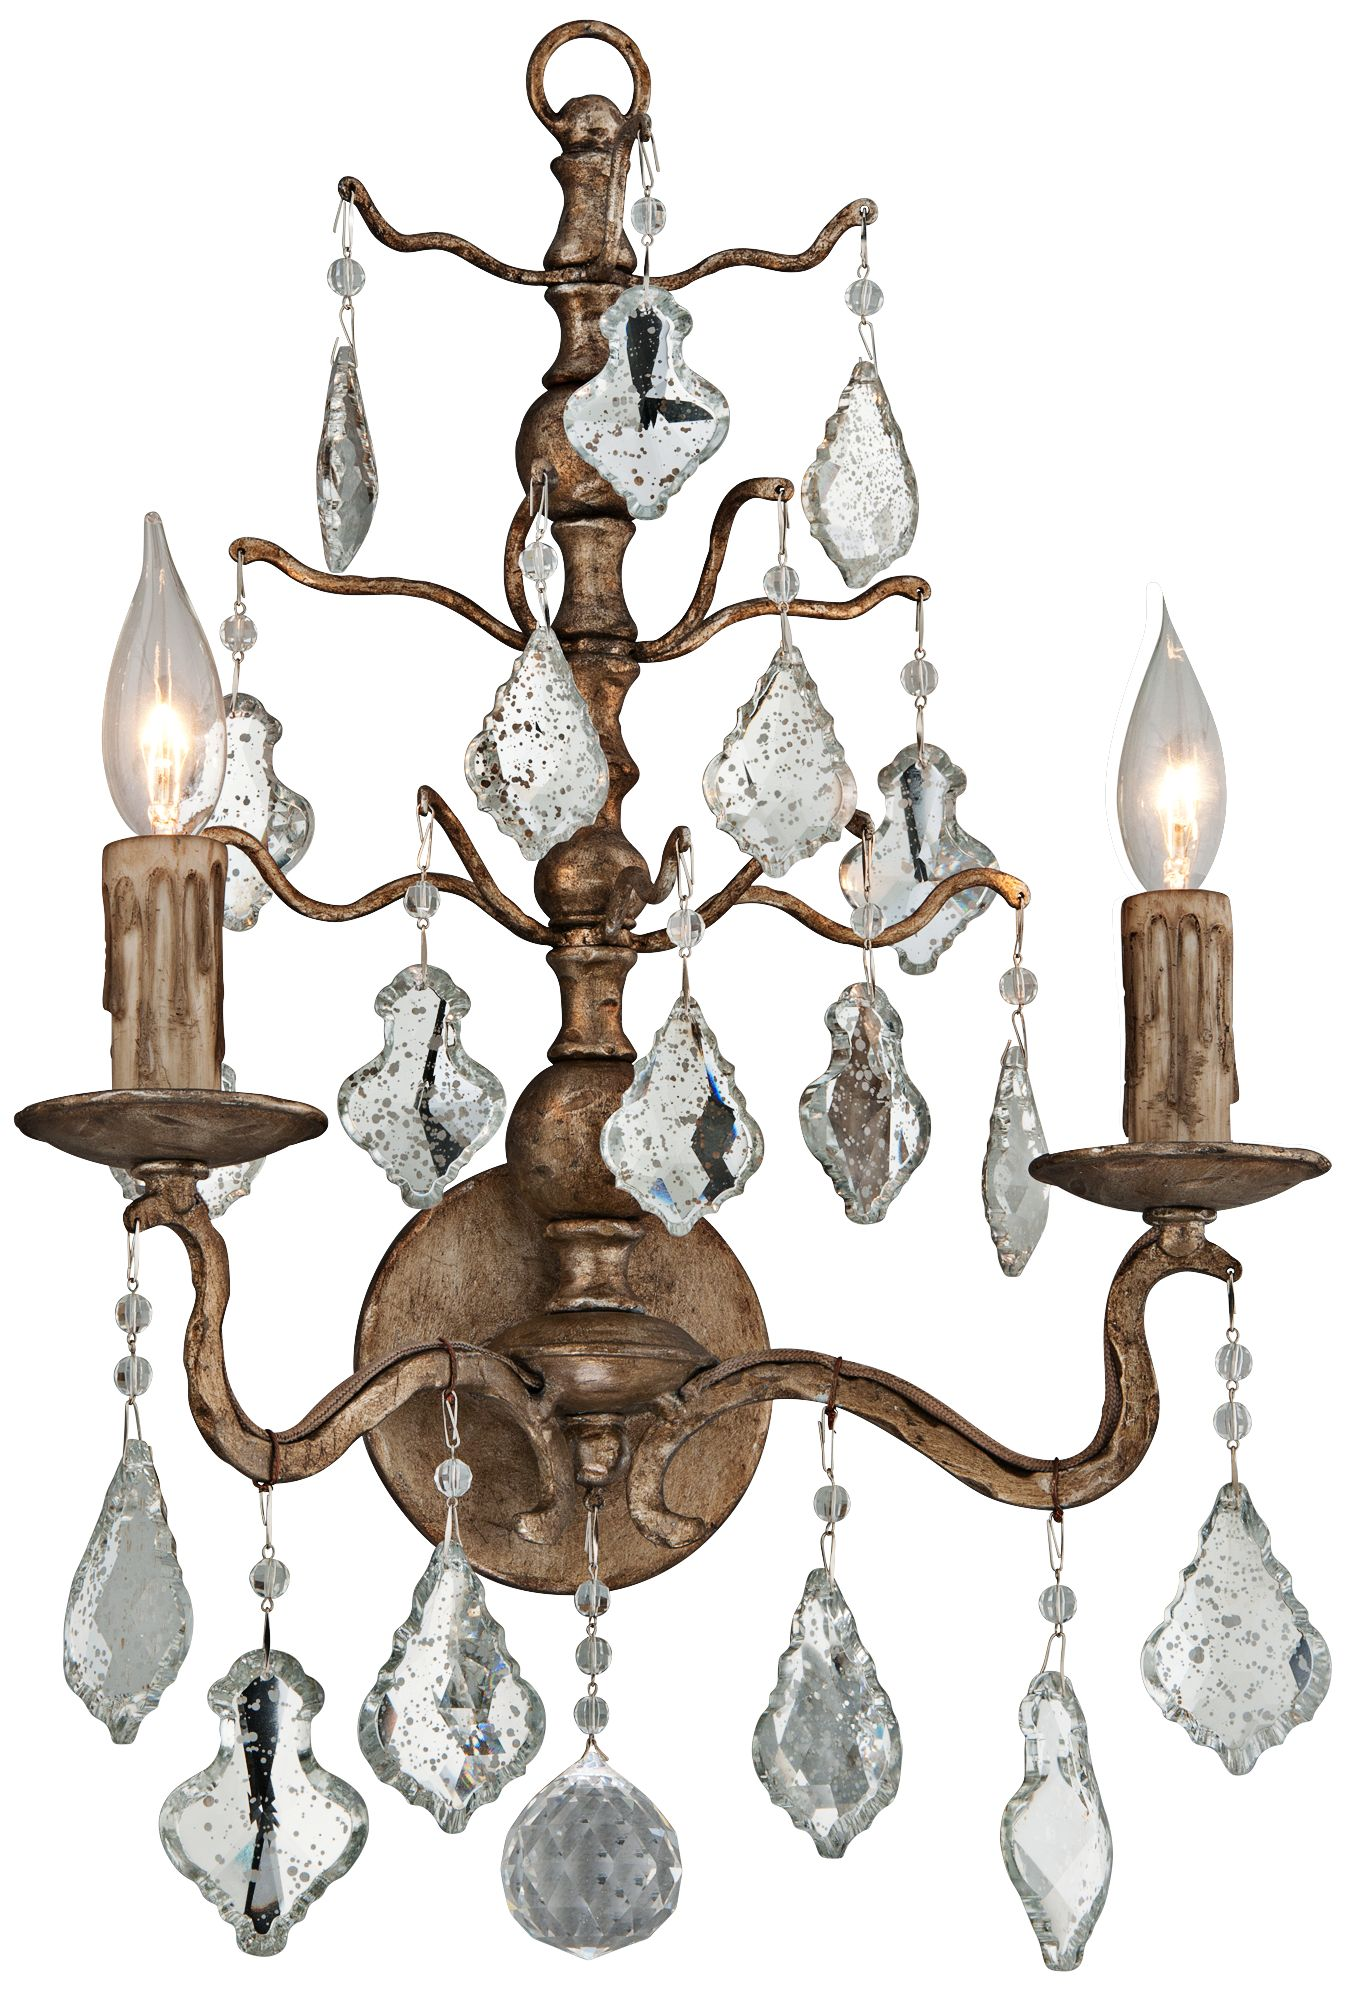 Siena 16 3/4 H Vienna Bronze Antique Mirror Wall Sconce  sc 1 st  L&s Plus : antique mirror sconce - www.canuckmediamonitor.org